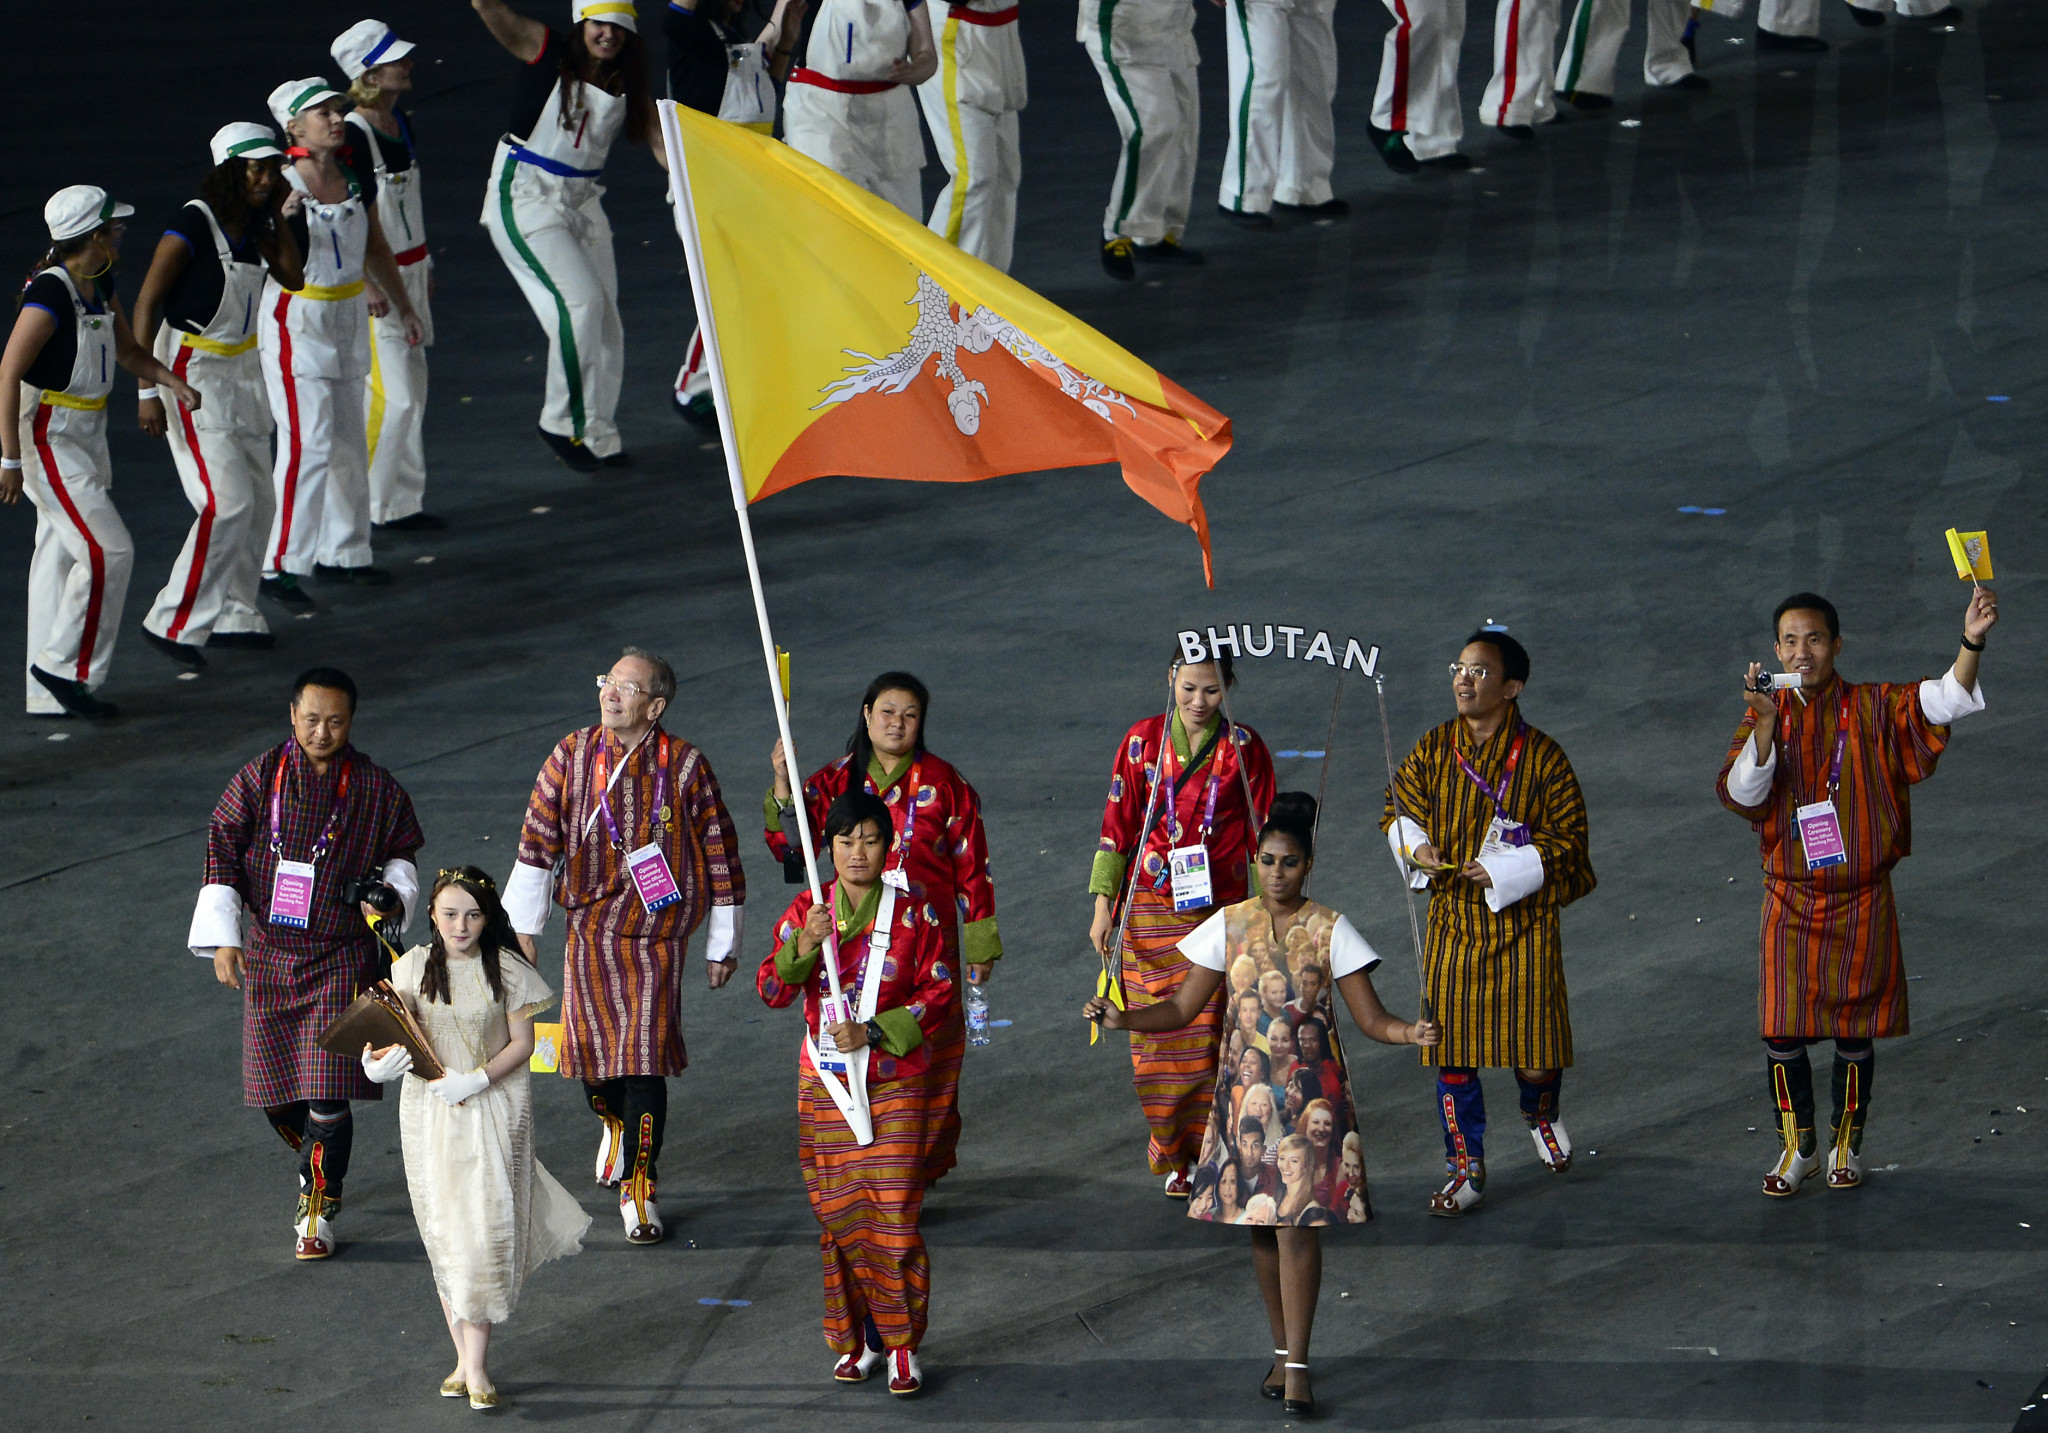 Bhutan NOC launch strategic plan until 2029 as continues search for first Olympic medal